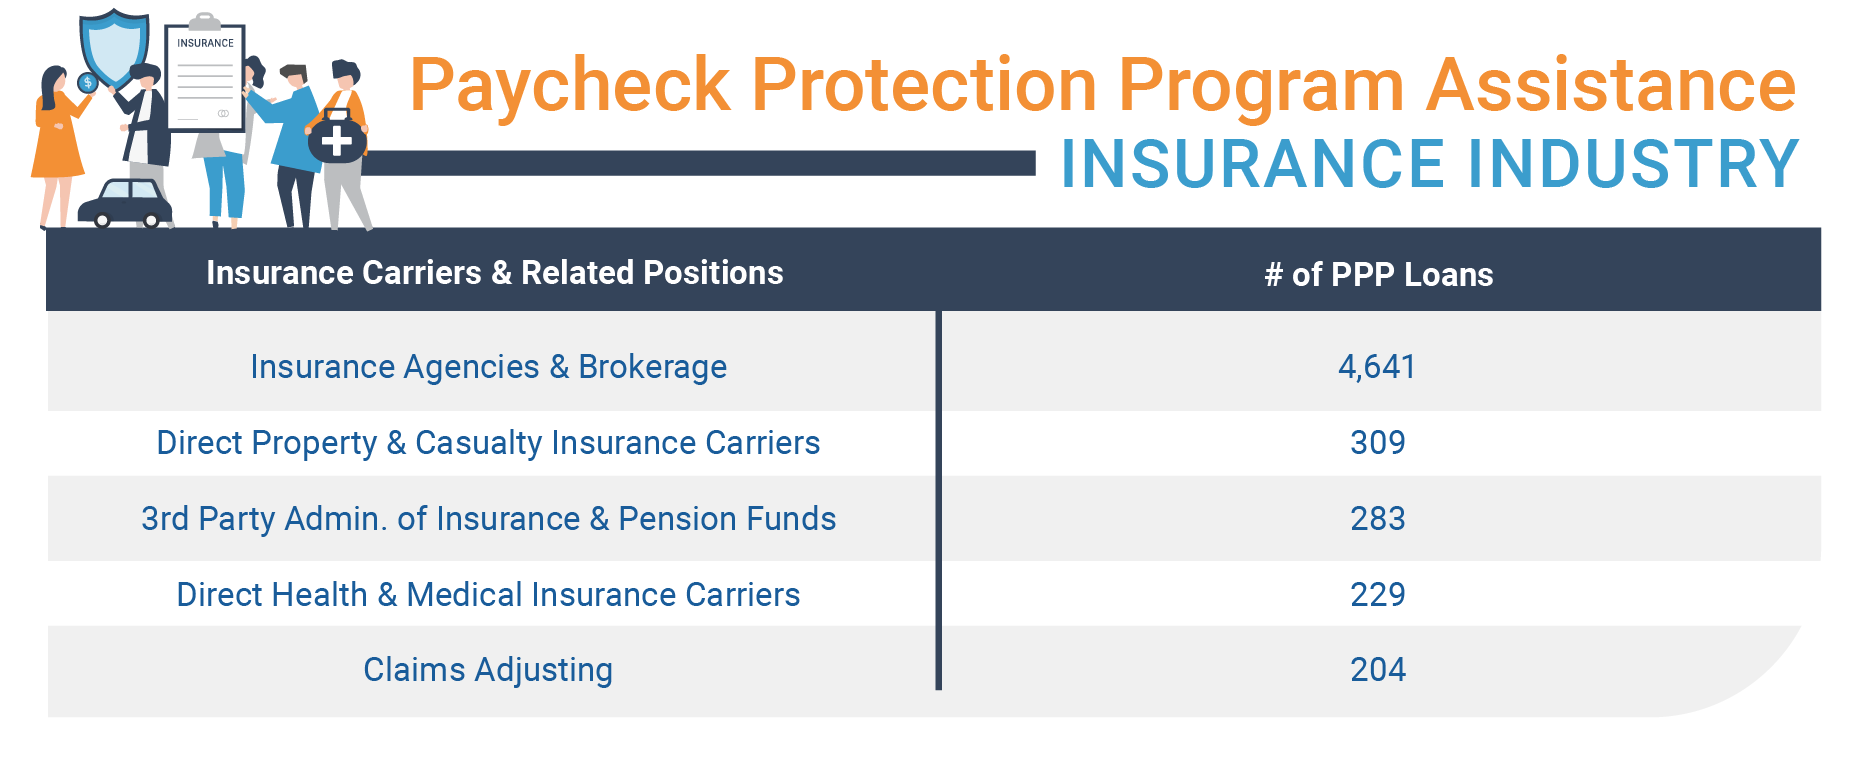 Top 10 Industries That Benefited from the Paycheck Protection Program - Insurance Industry